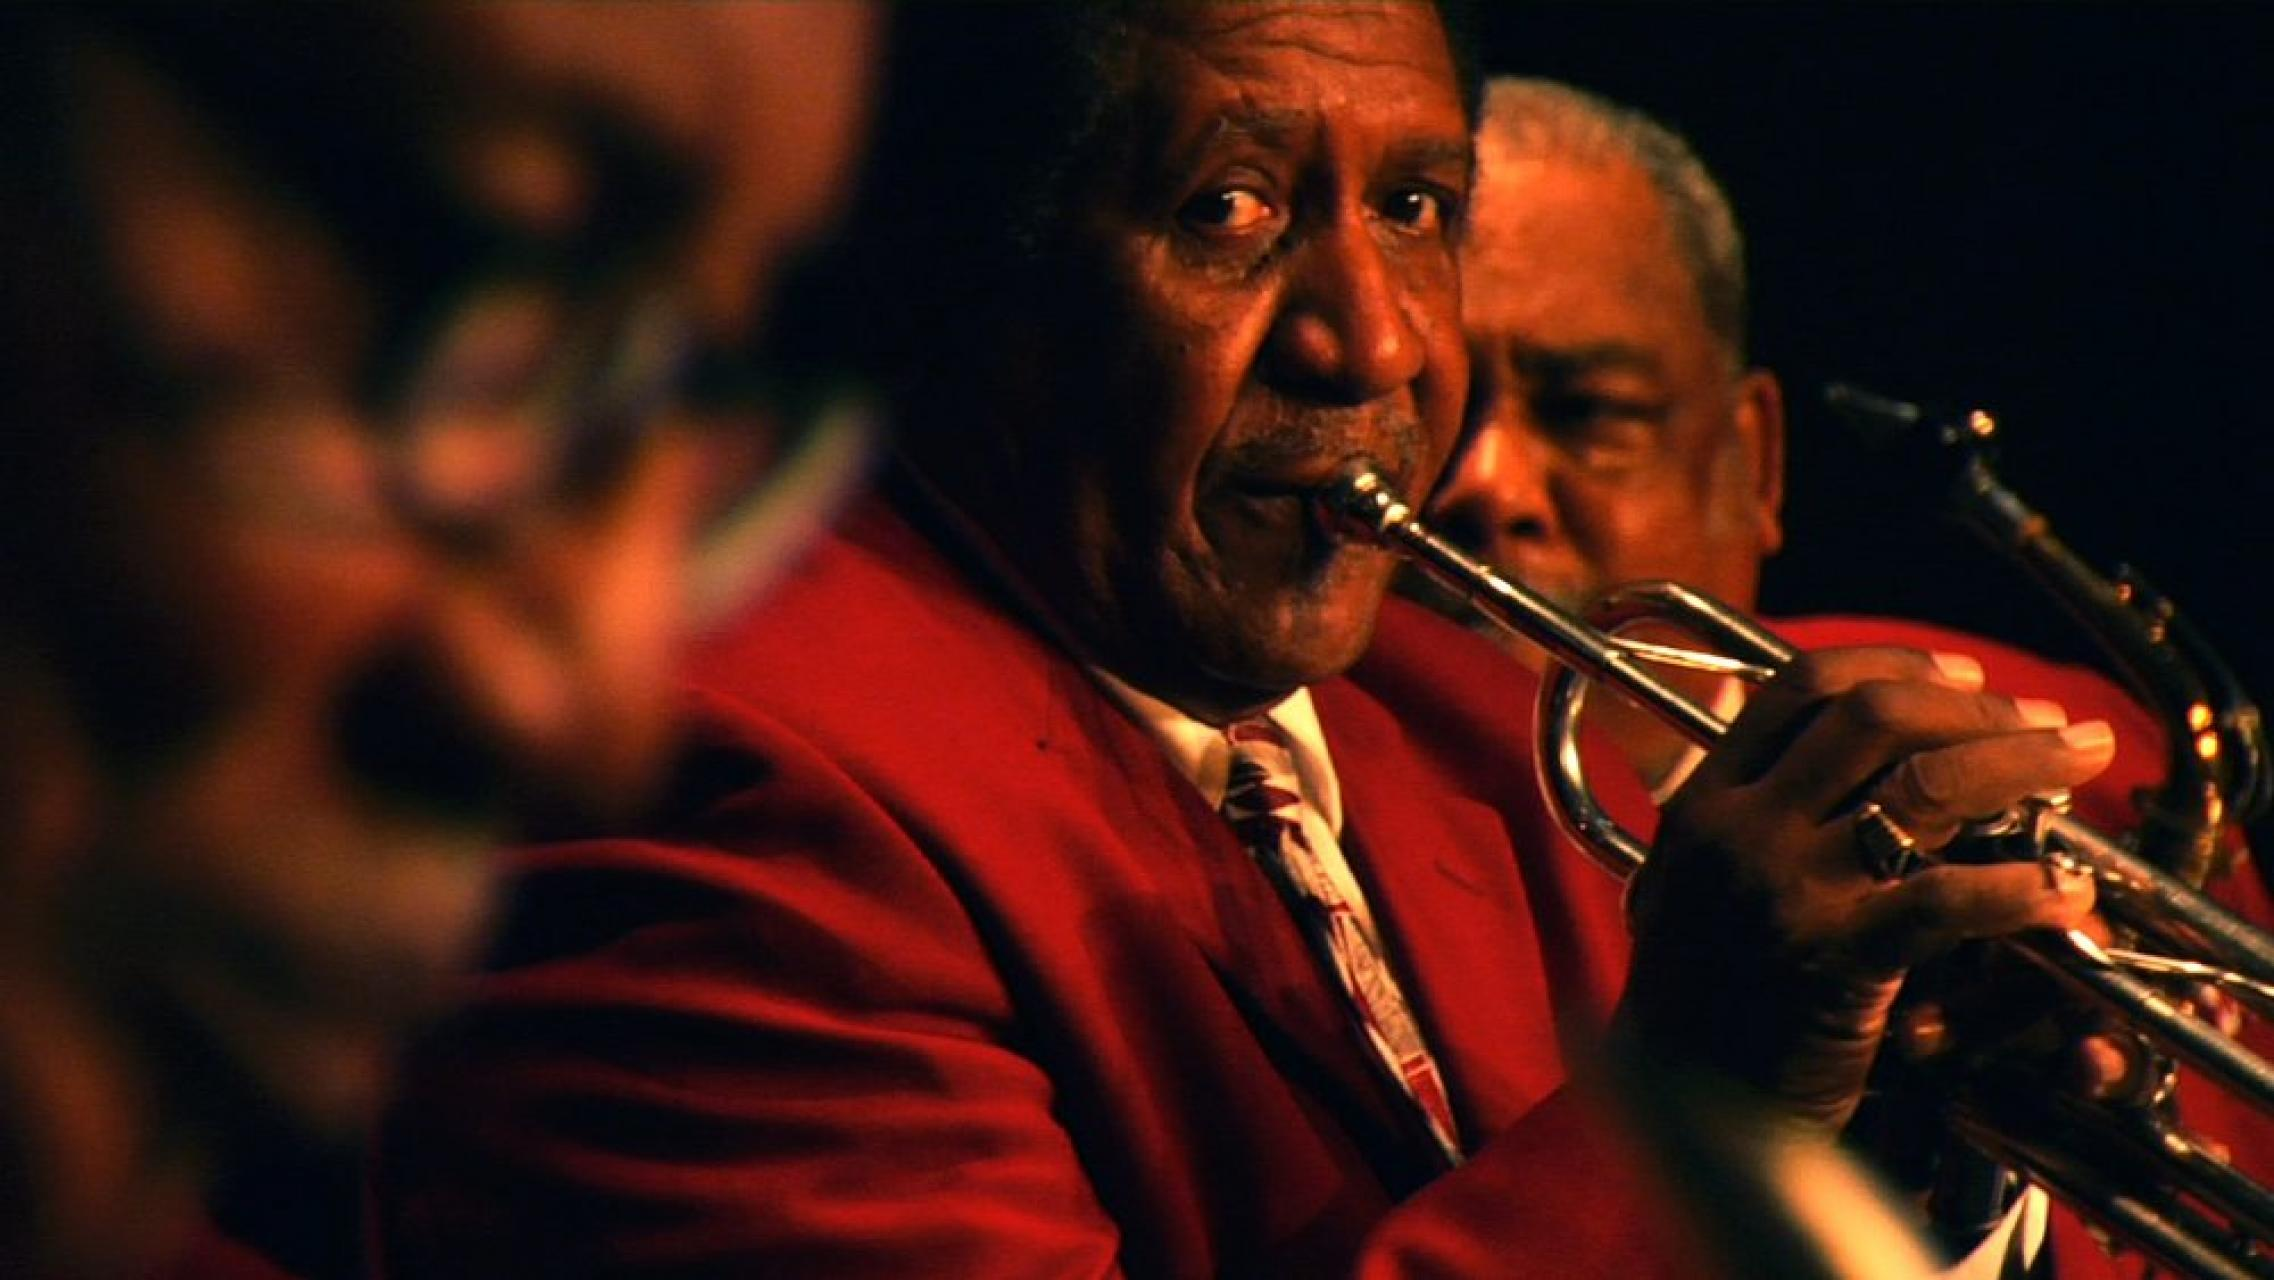 Close up of man in red suit playing trumpet.